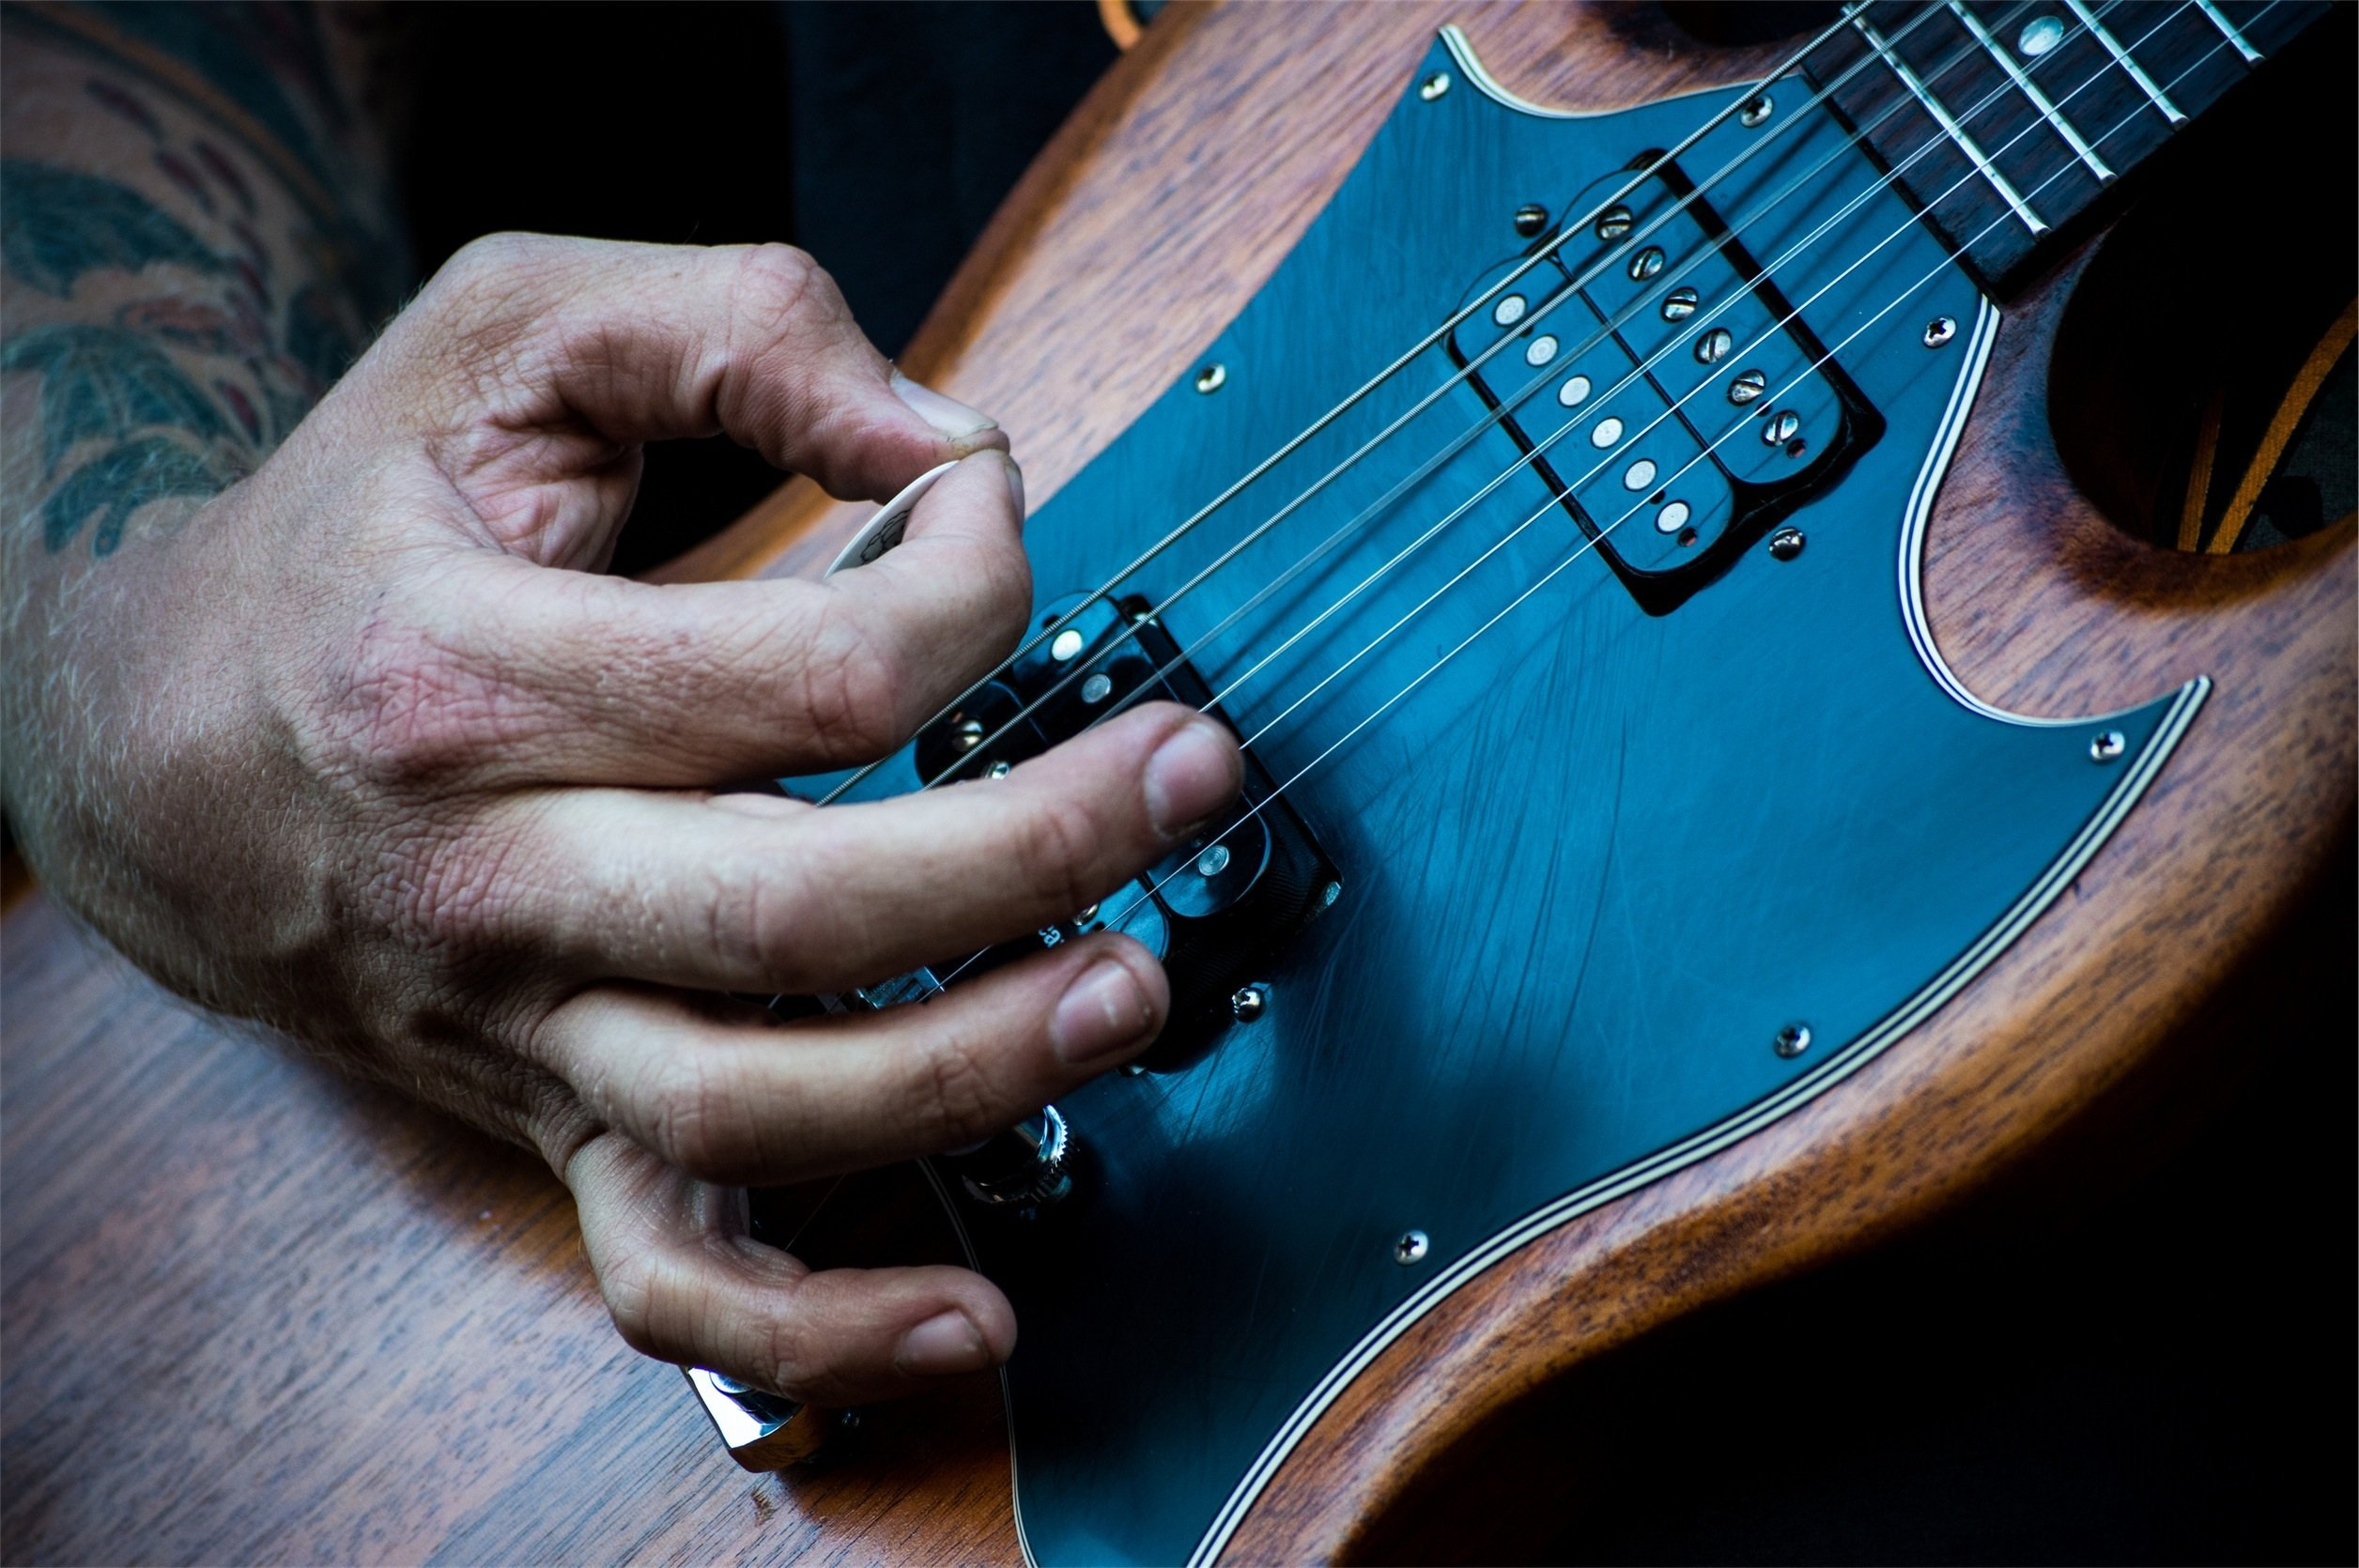 A close up of a person strumming an electric guitar